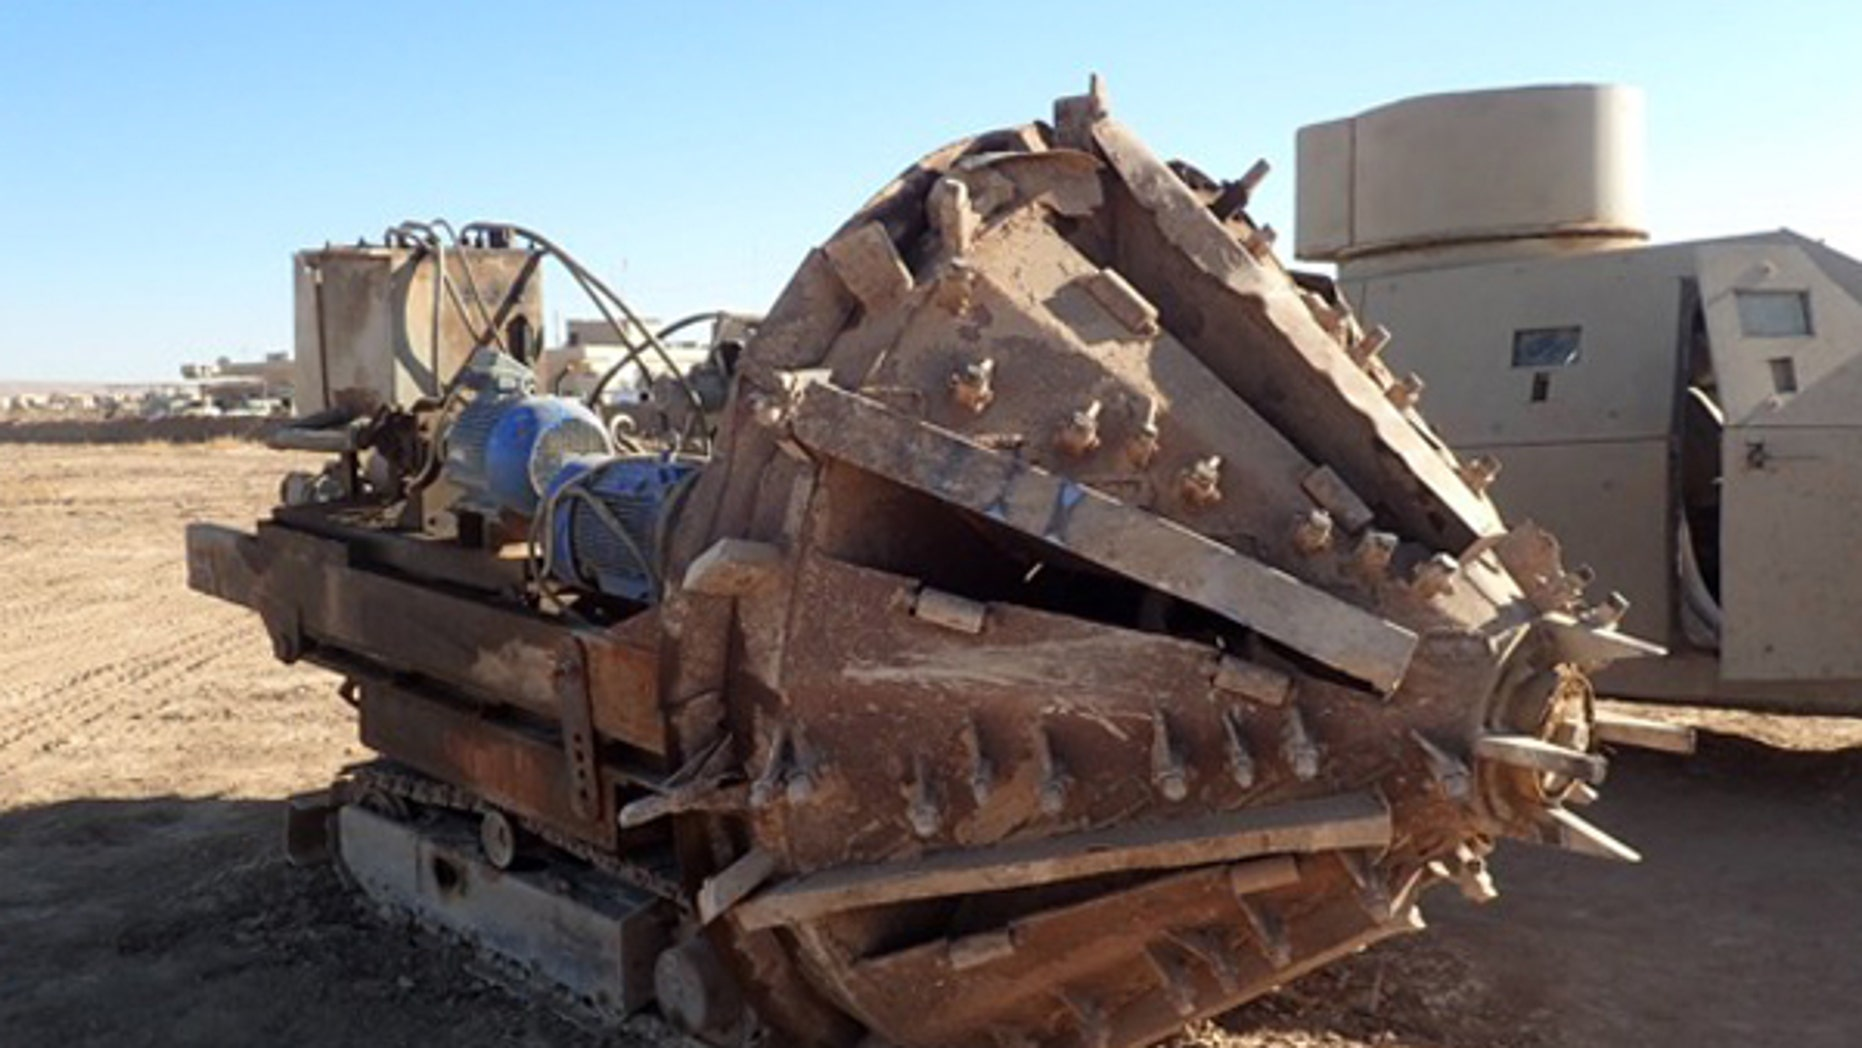 An ISIS tunnel-boring machine captured by the Iraqi Army's 9th Division in a village east of Mosul.